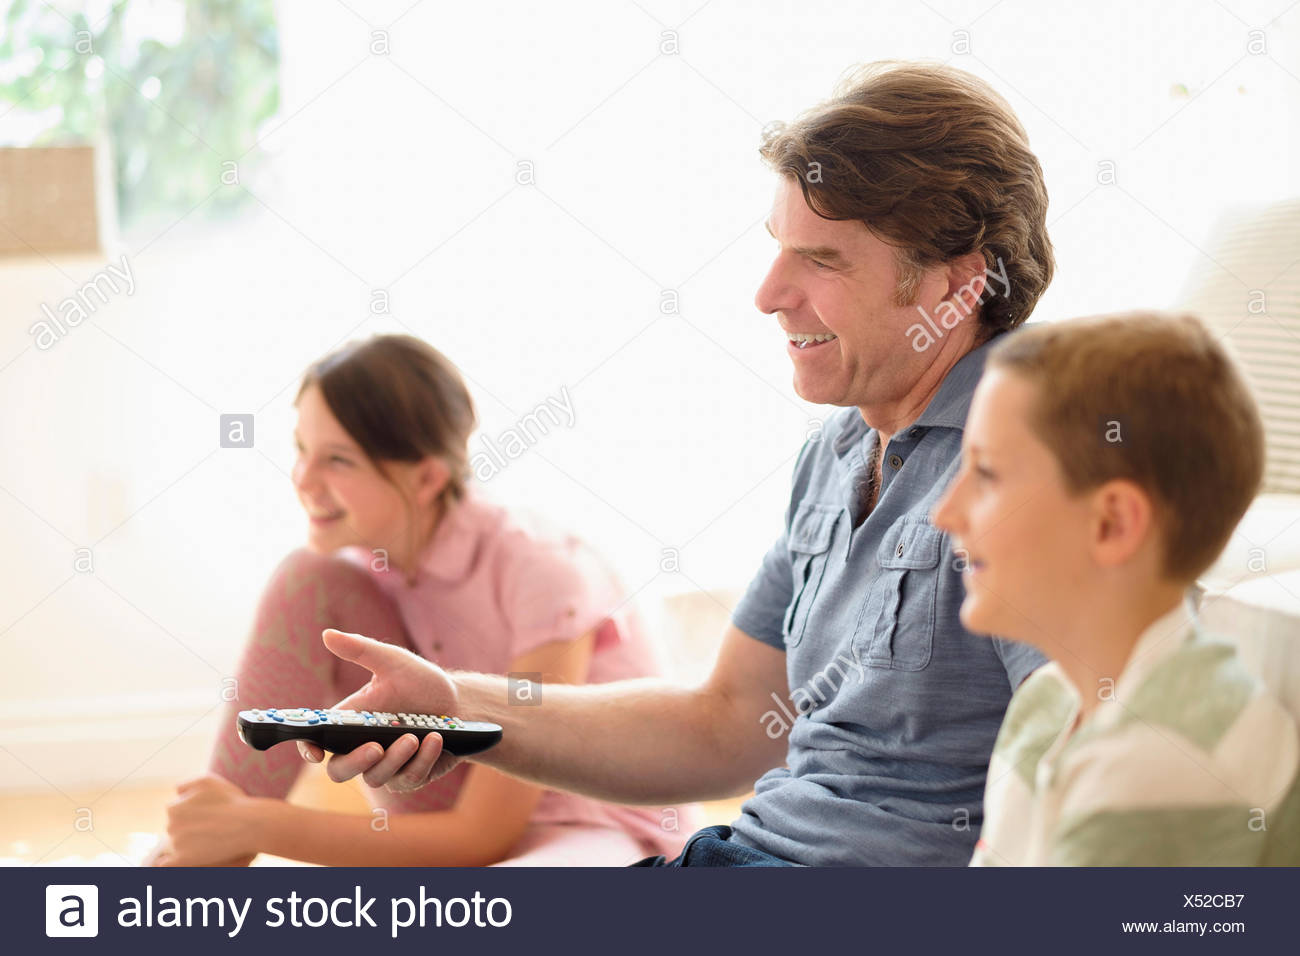 Children (8-9, 10-11) watching TV with their father Stock Photo